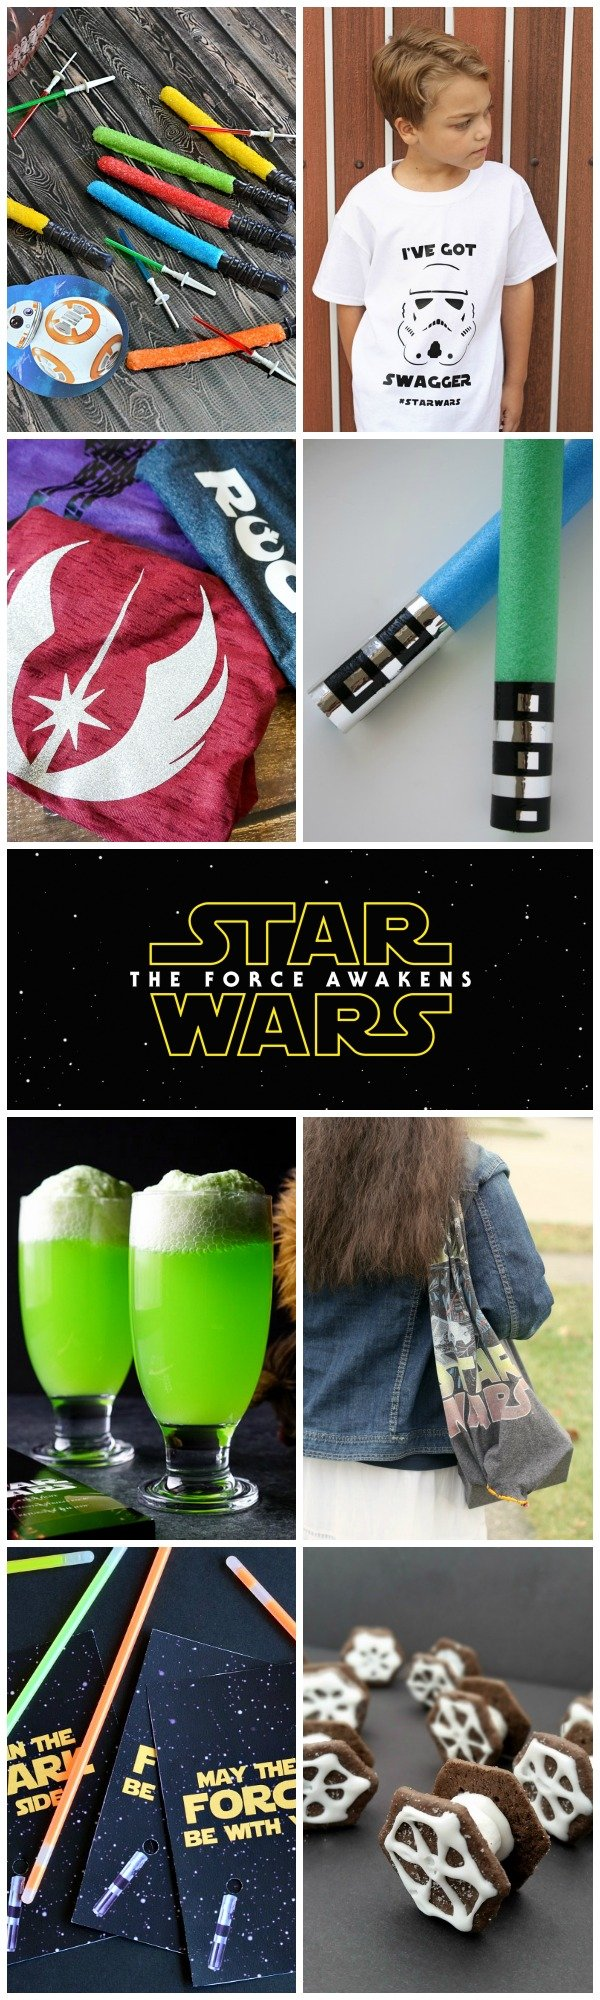 15 star wars inspired projects. Crafts, recipes and DIY ideas to celebrate The Force Awakens.